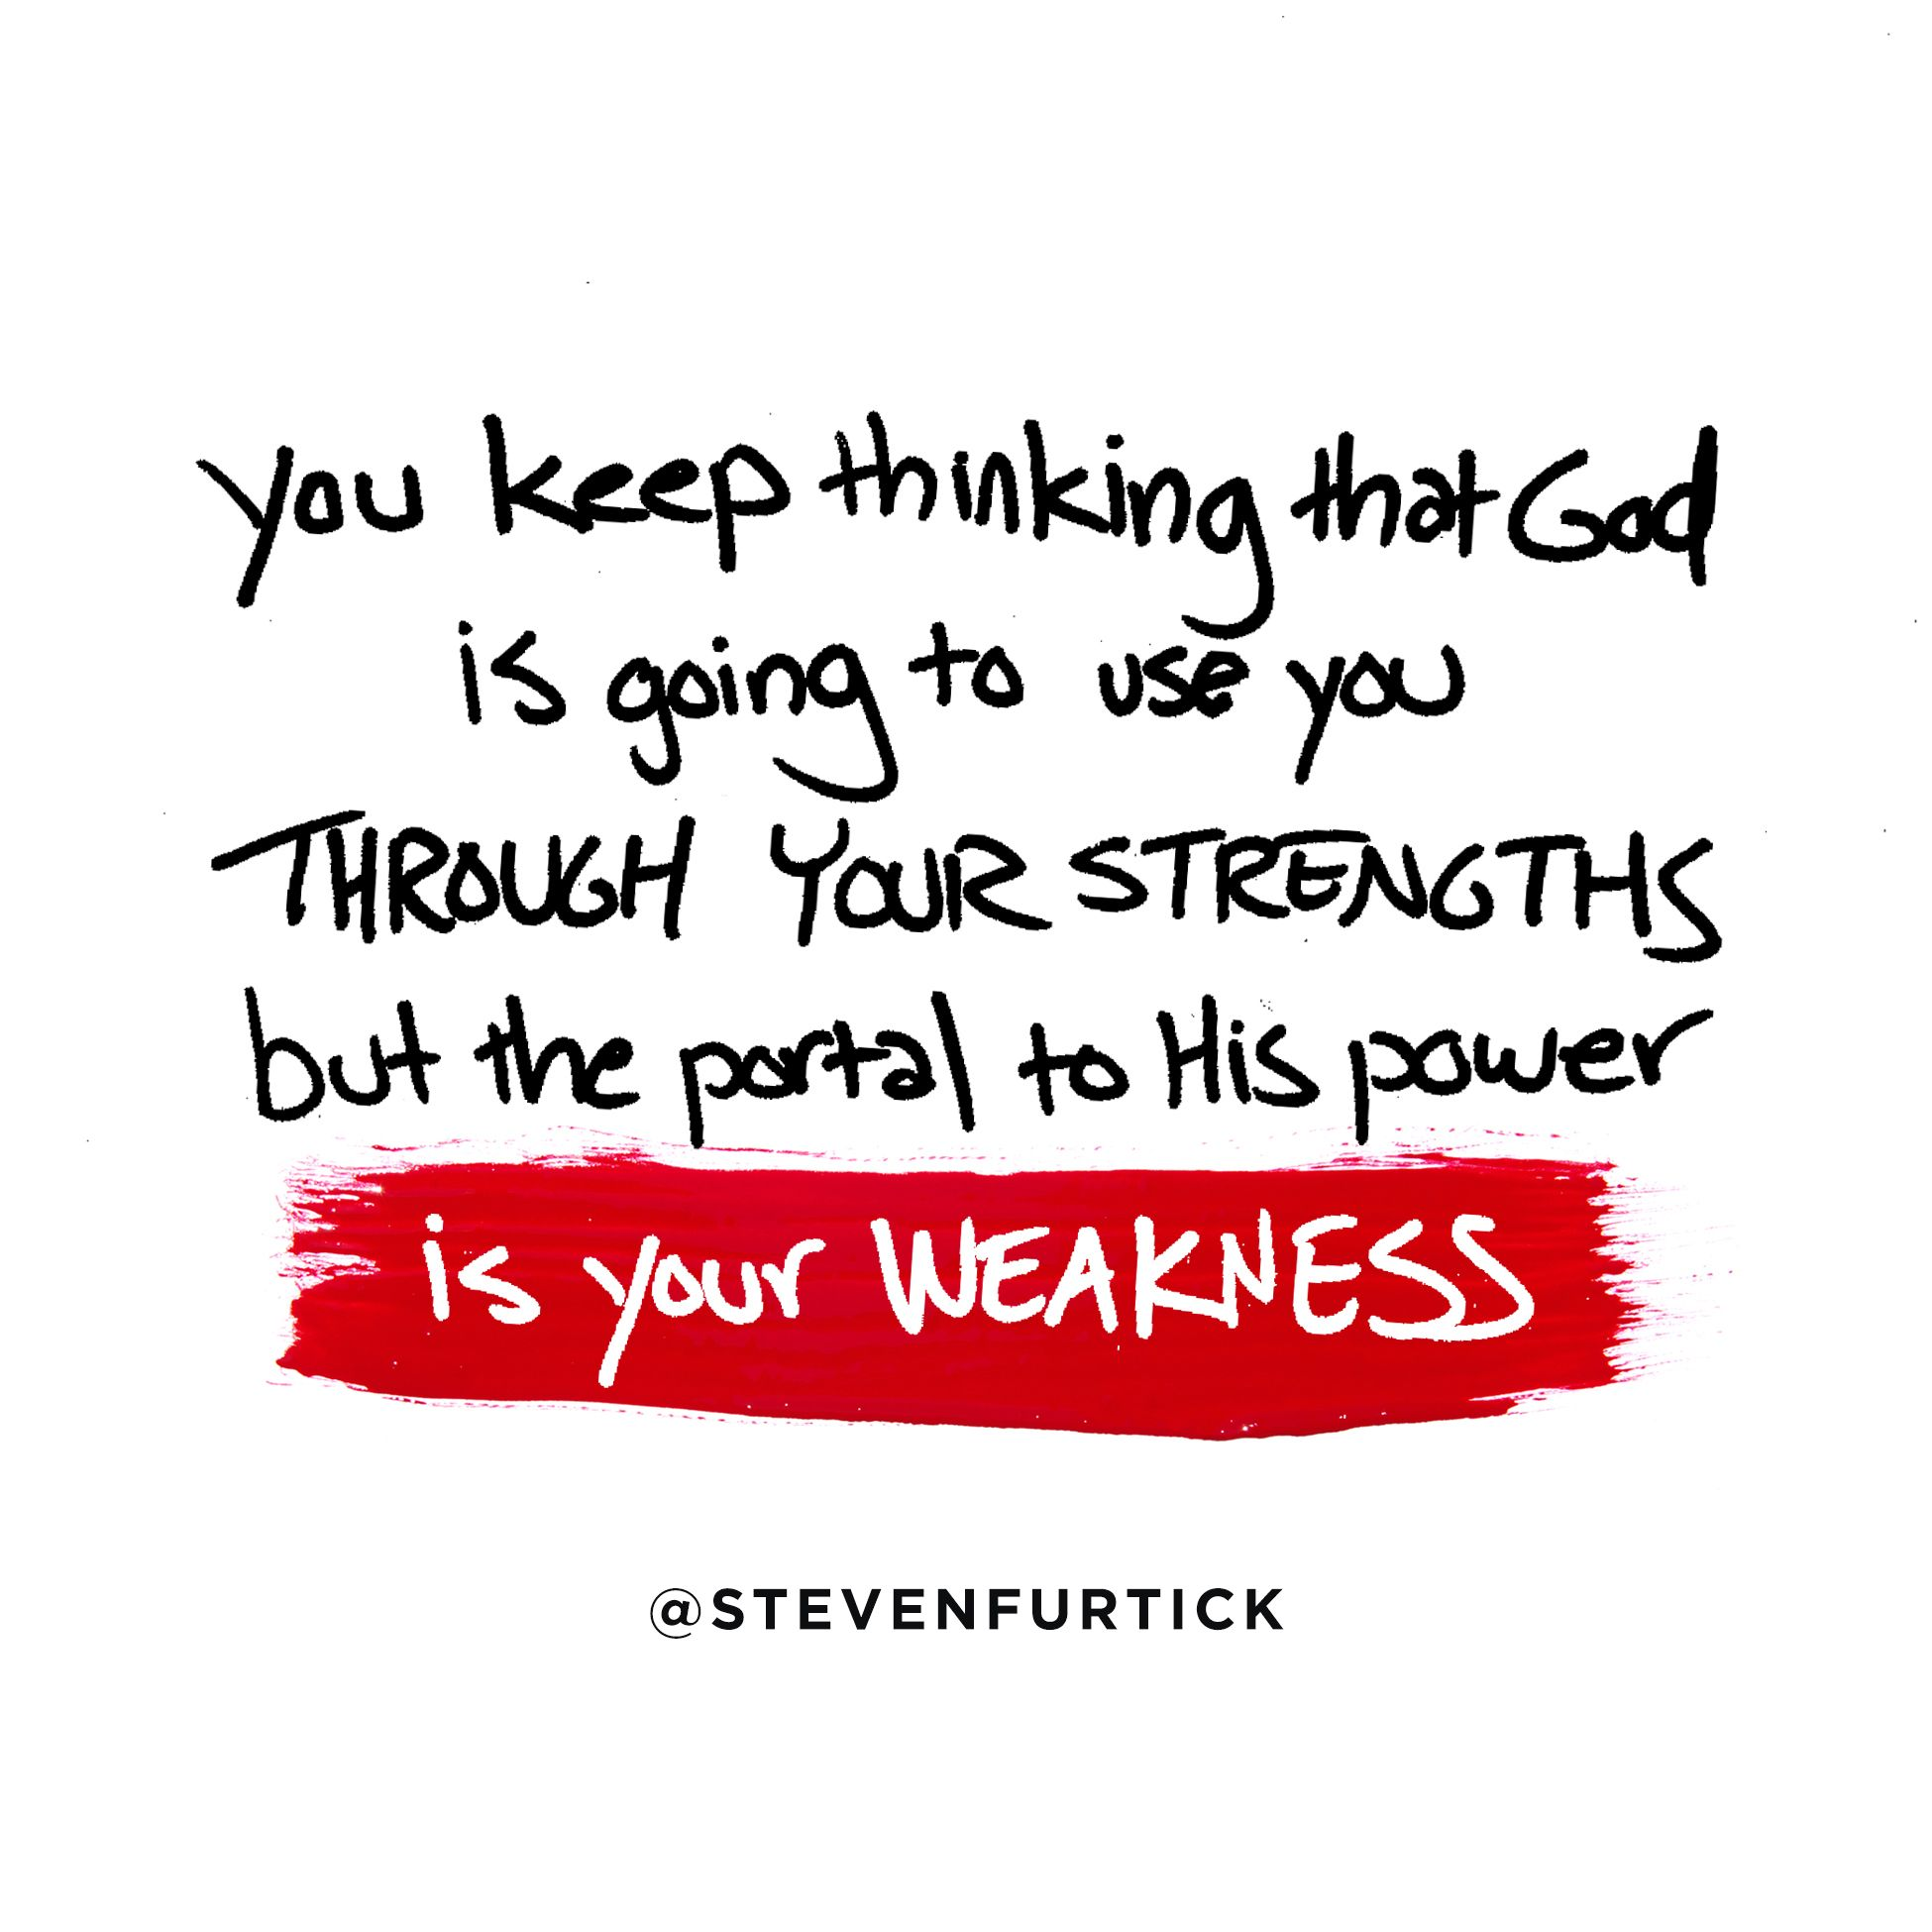 get off the bench pastor steven furtick at elevation church get off the bench pastor steven furtick at elevation church motivational quotes focus on the lord and doing something